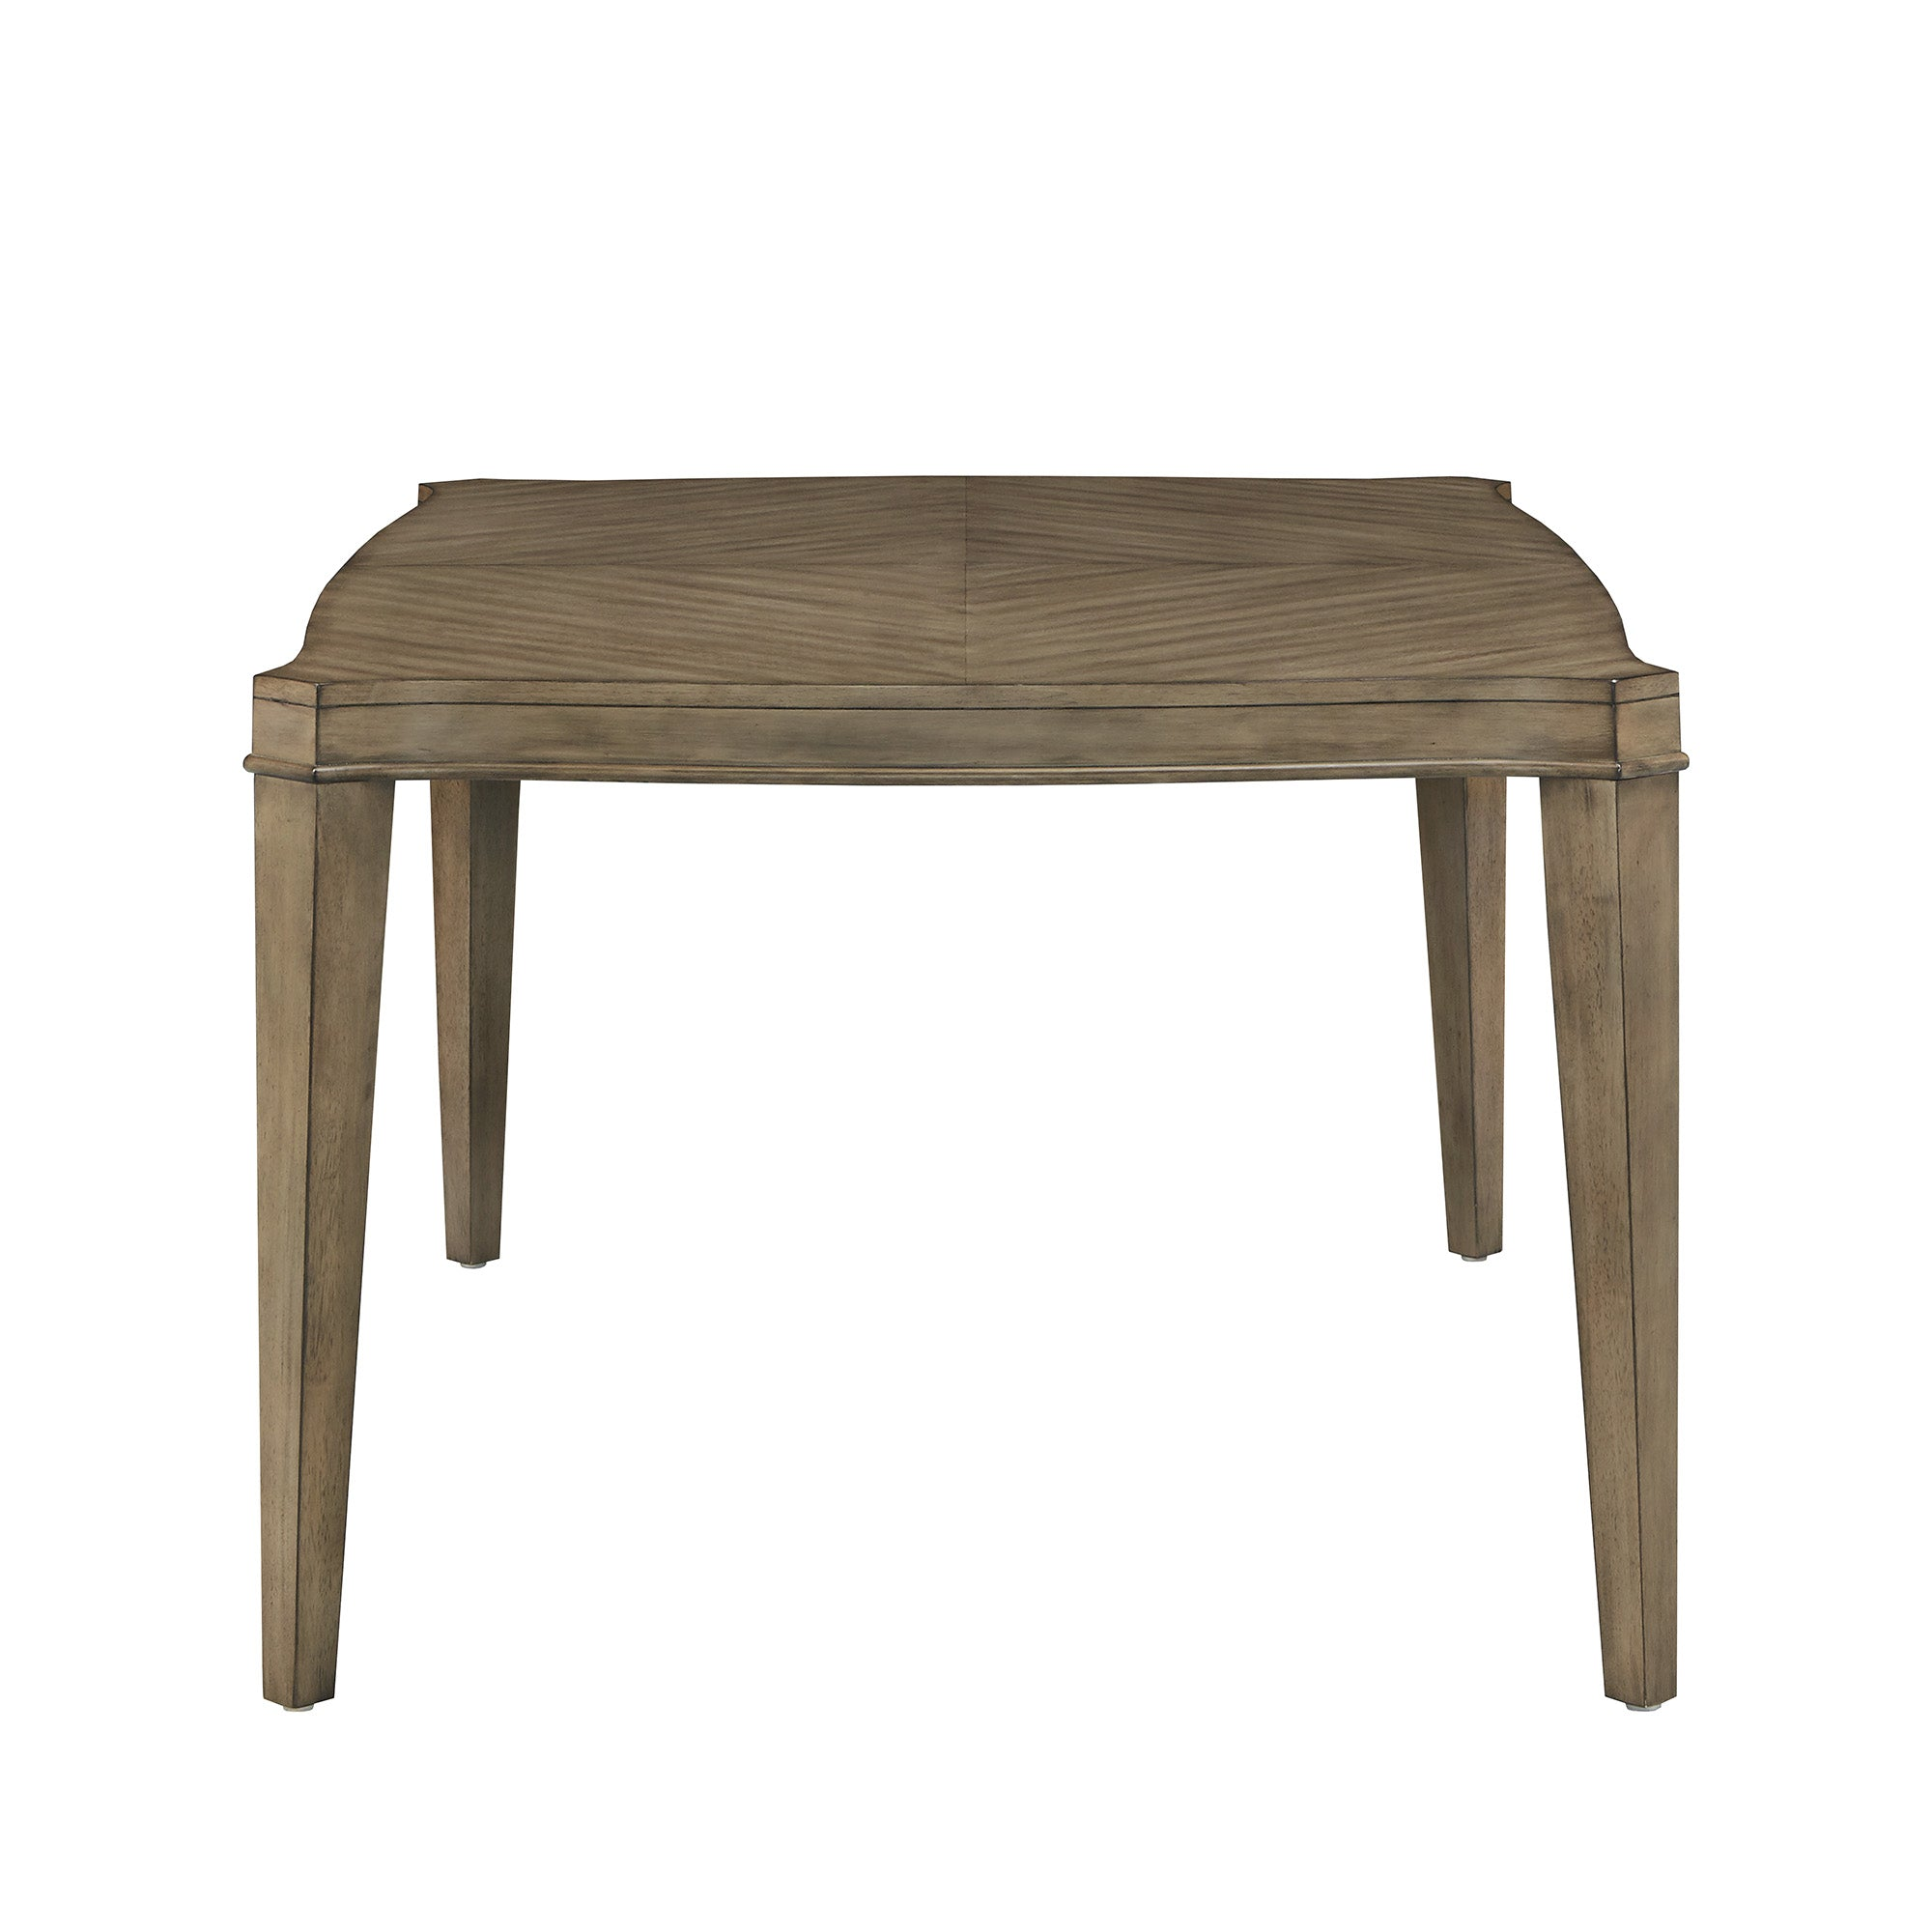 Antique Taupe Wood Extending Dining Table